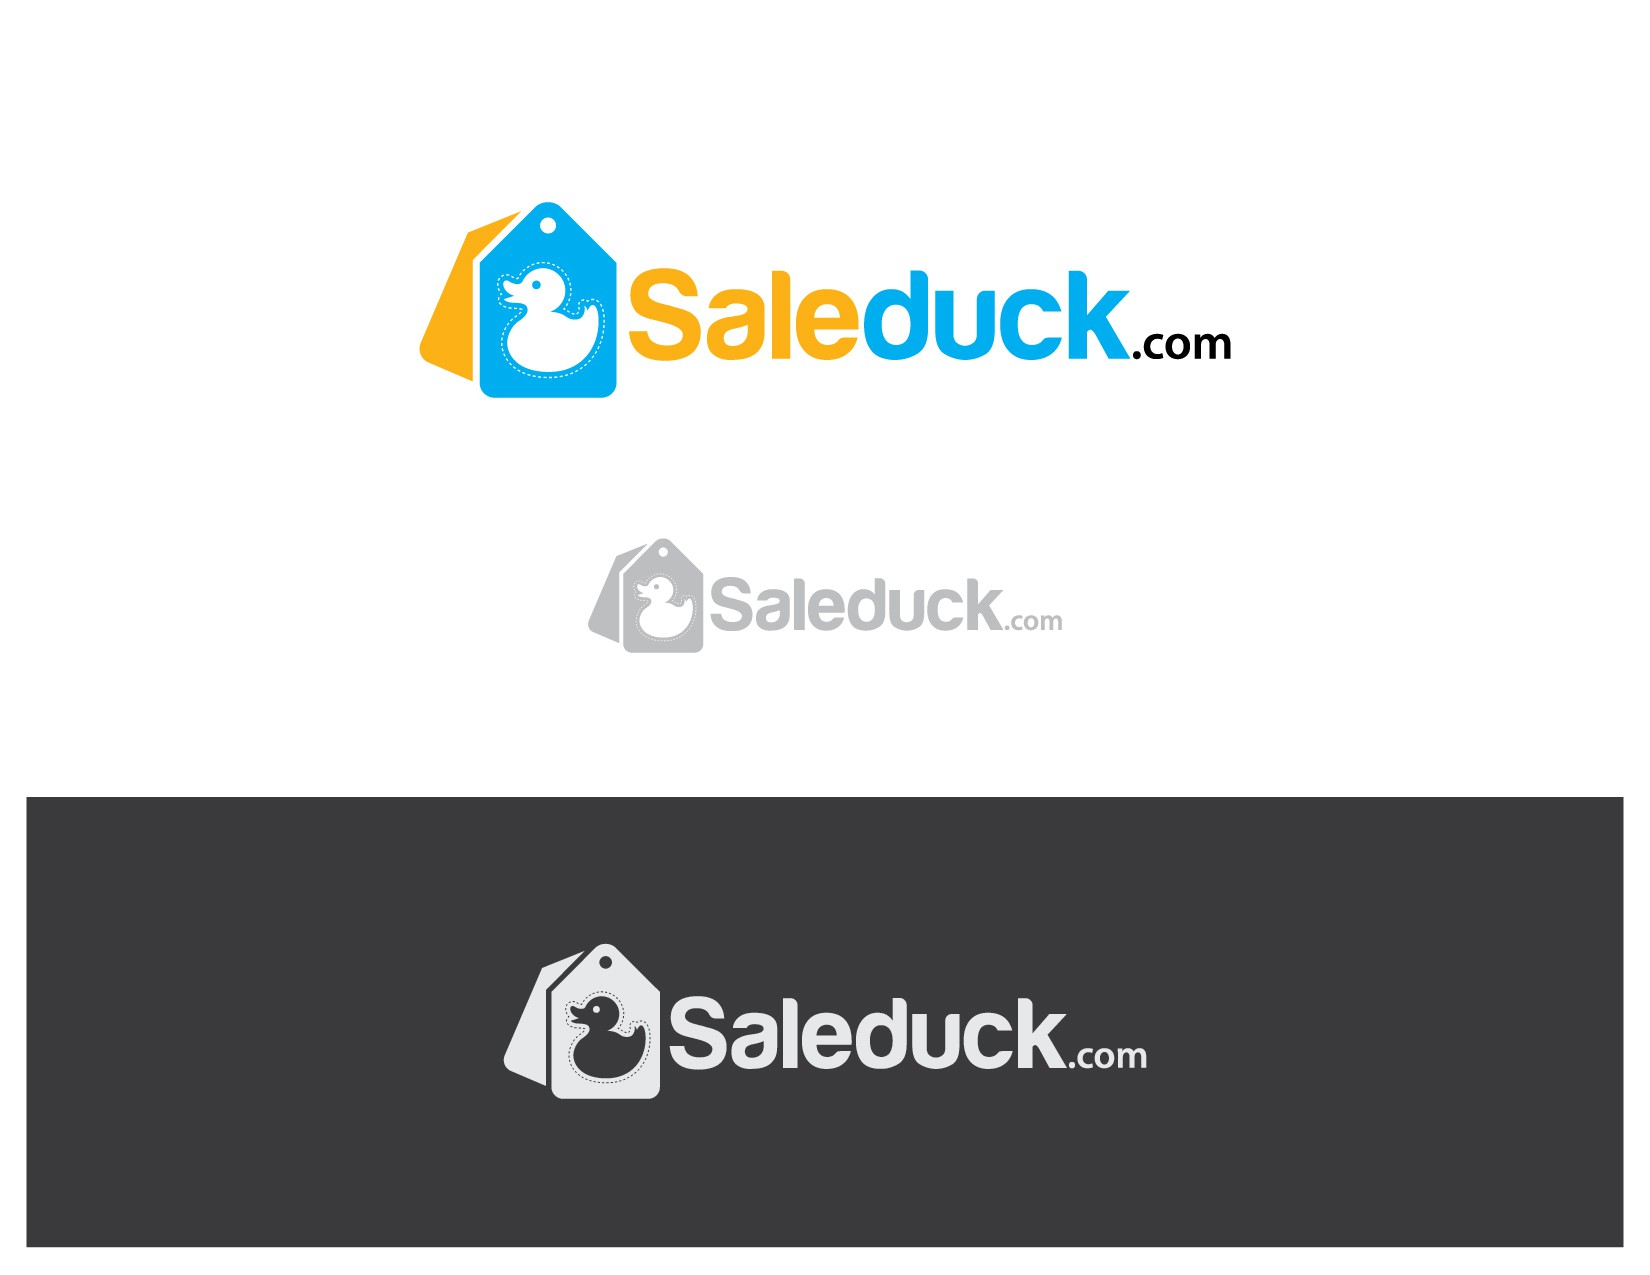 New logo for internationally expanding coupon website